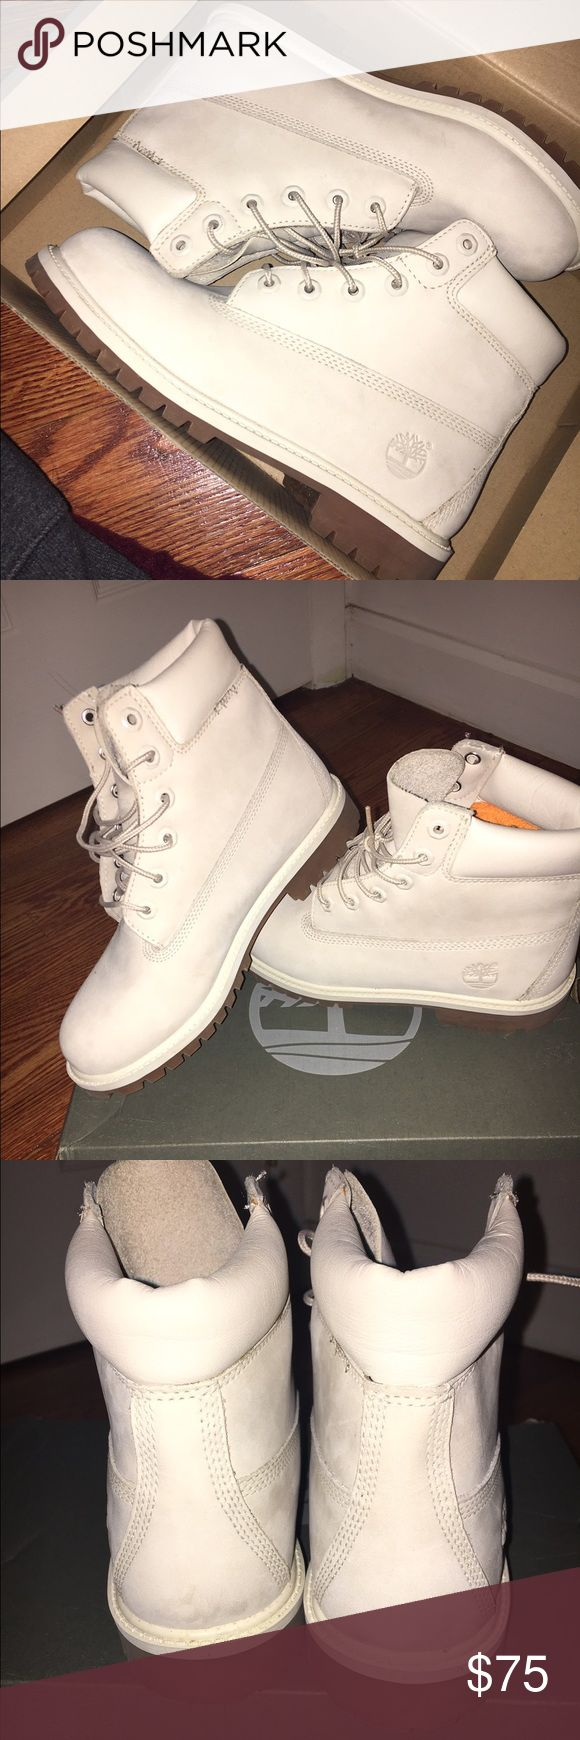 Off White timberland boots 6.5 juniors off white timberlands= approx. 8 in women's Timberland Shoes Ankle Boots & Booties